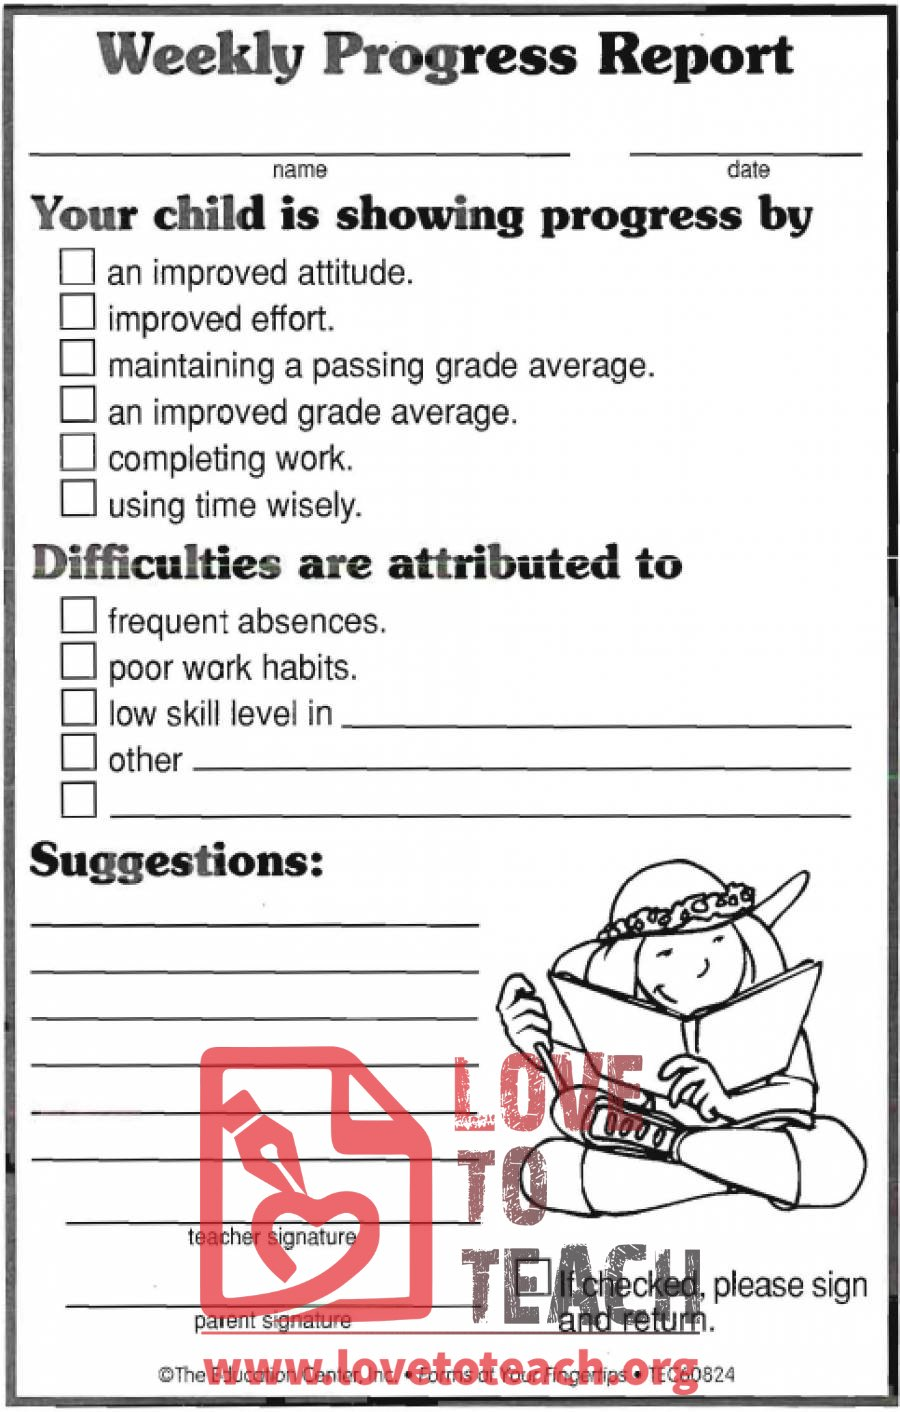 Weekly Progress Report Forms | Free Printable Worksheets